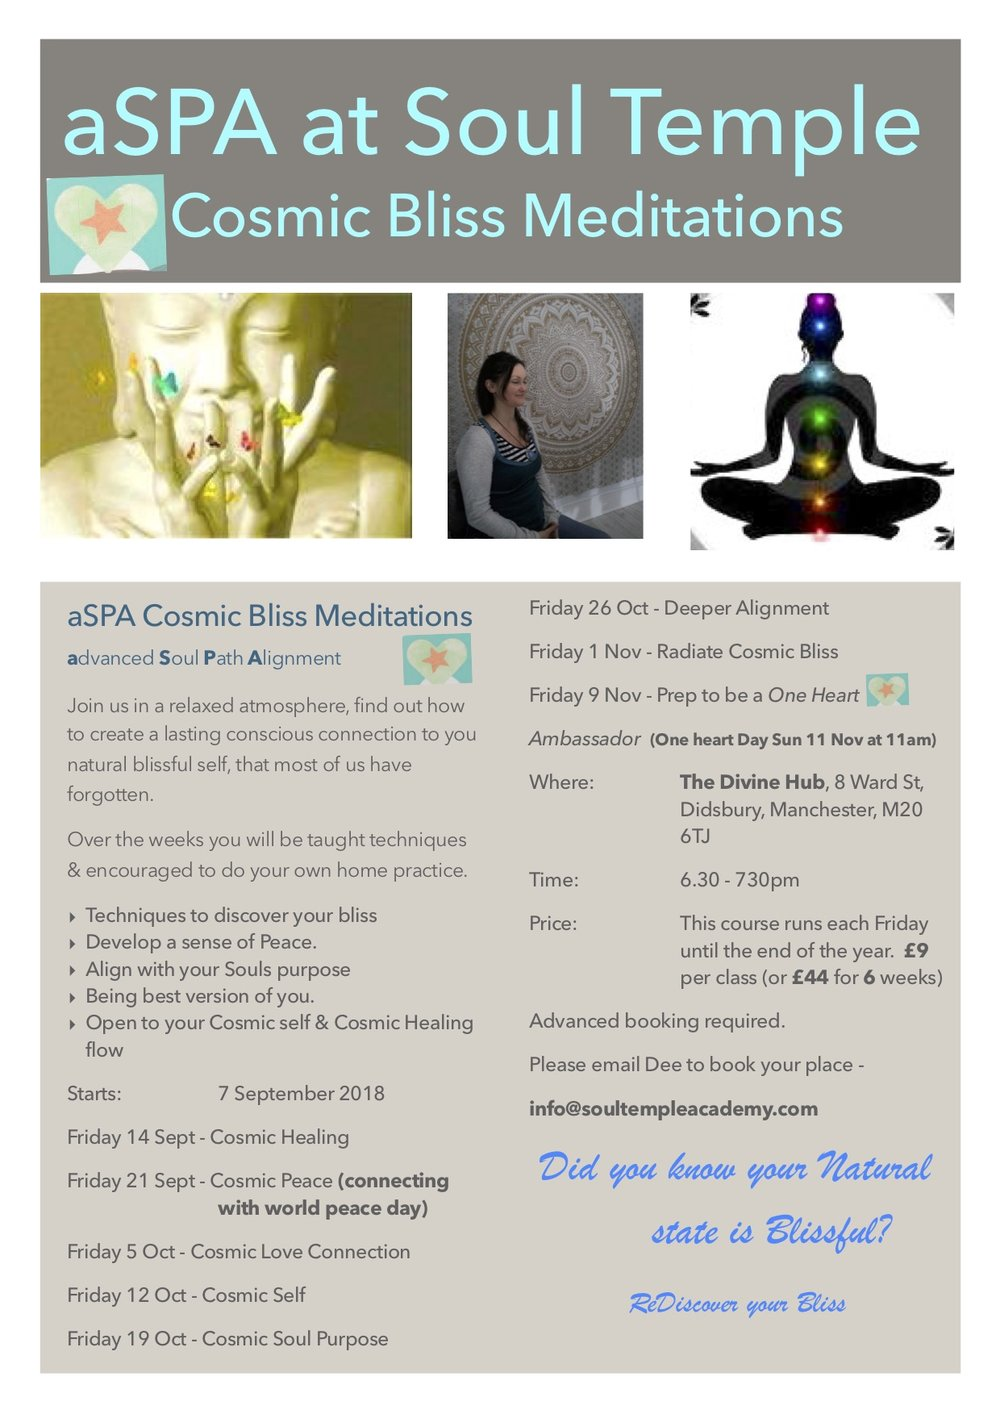 Cosmic Bliss Meditations Divine Hub.jpg